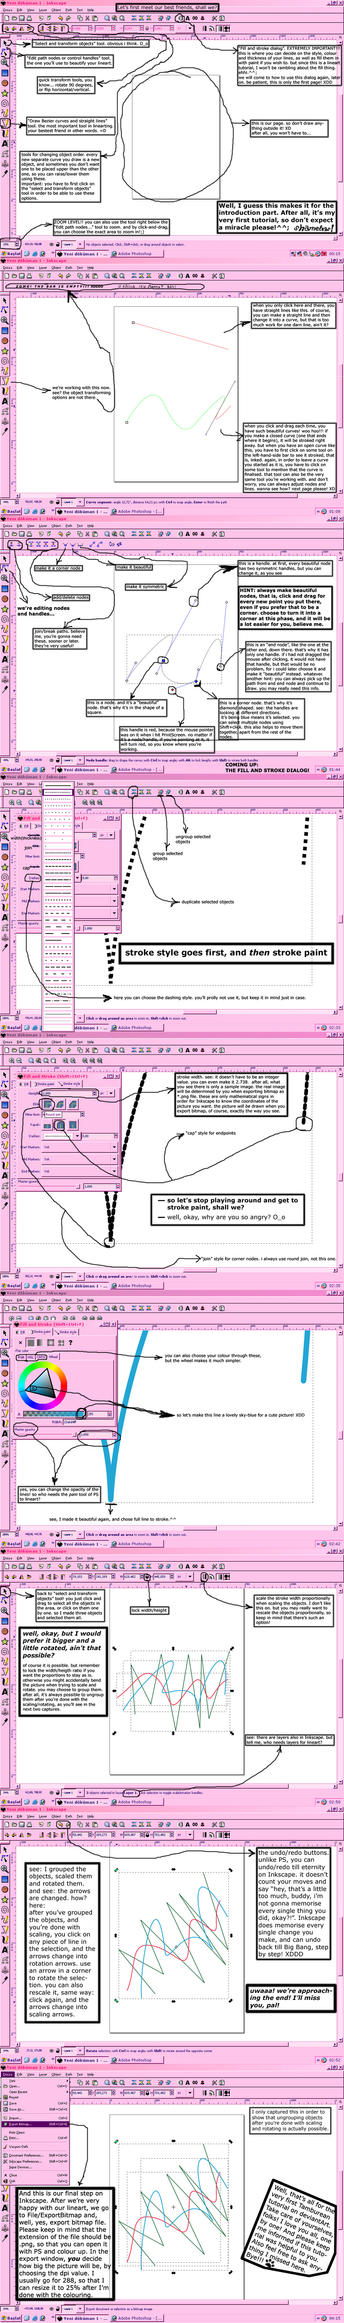 Drawing Lines In Inkscape : Basics of lineart in inkscape by yaylitambur on deviantart